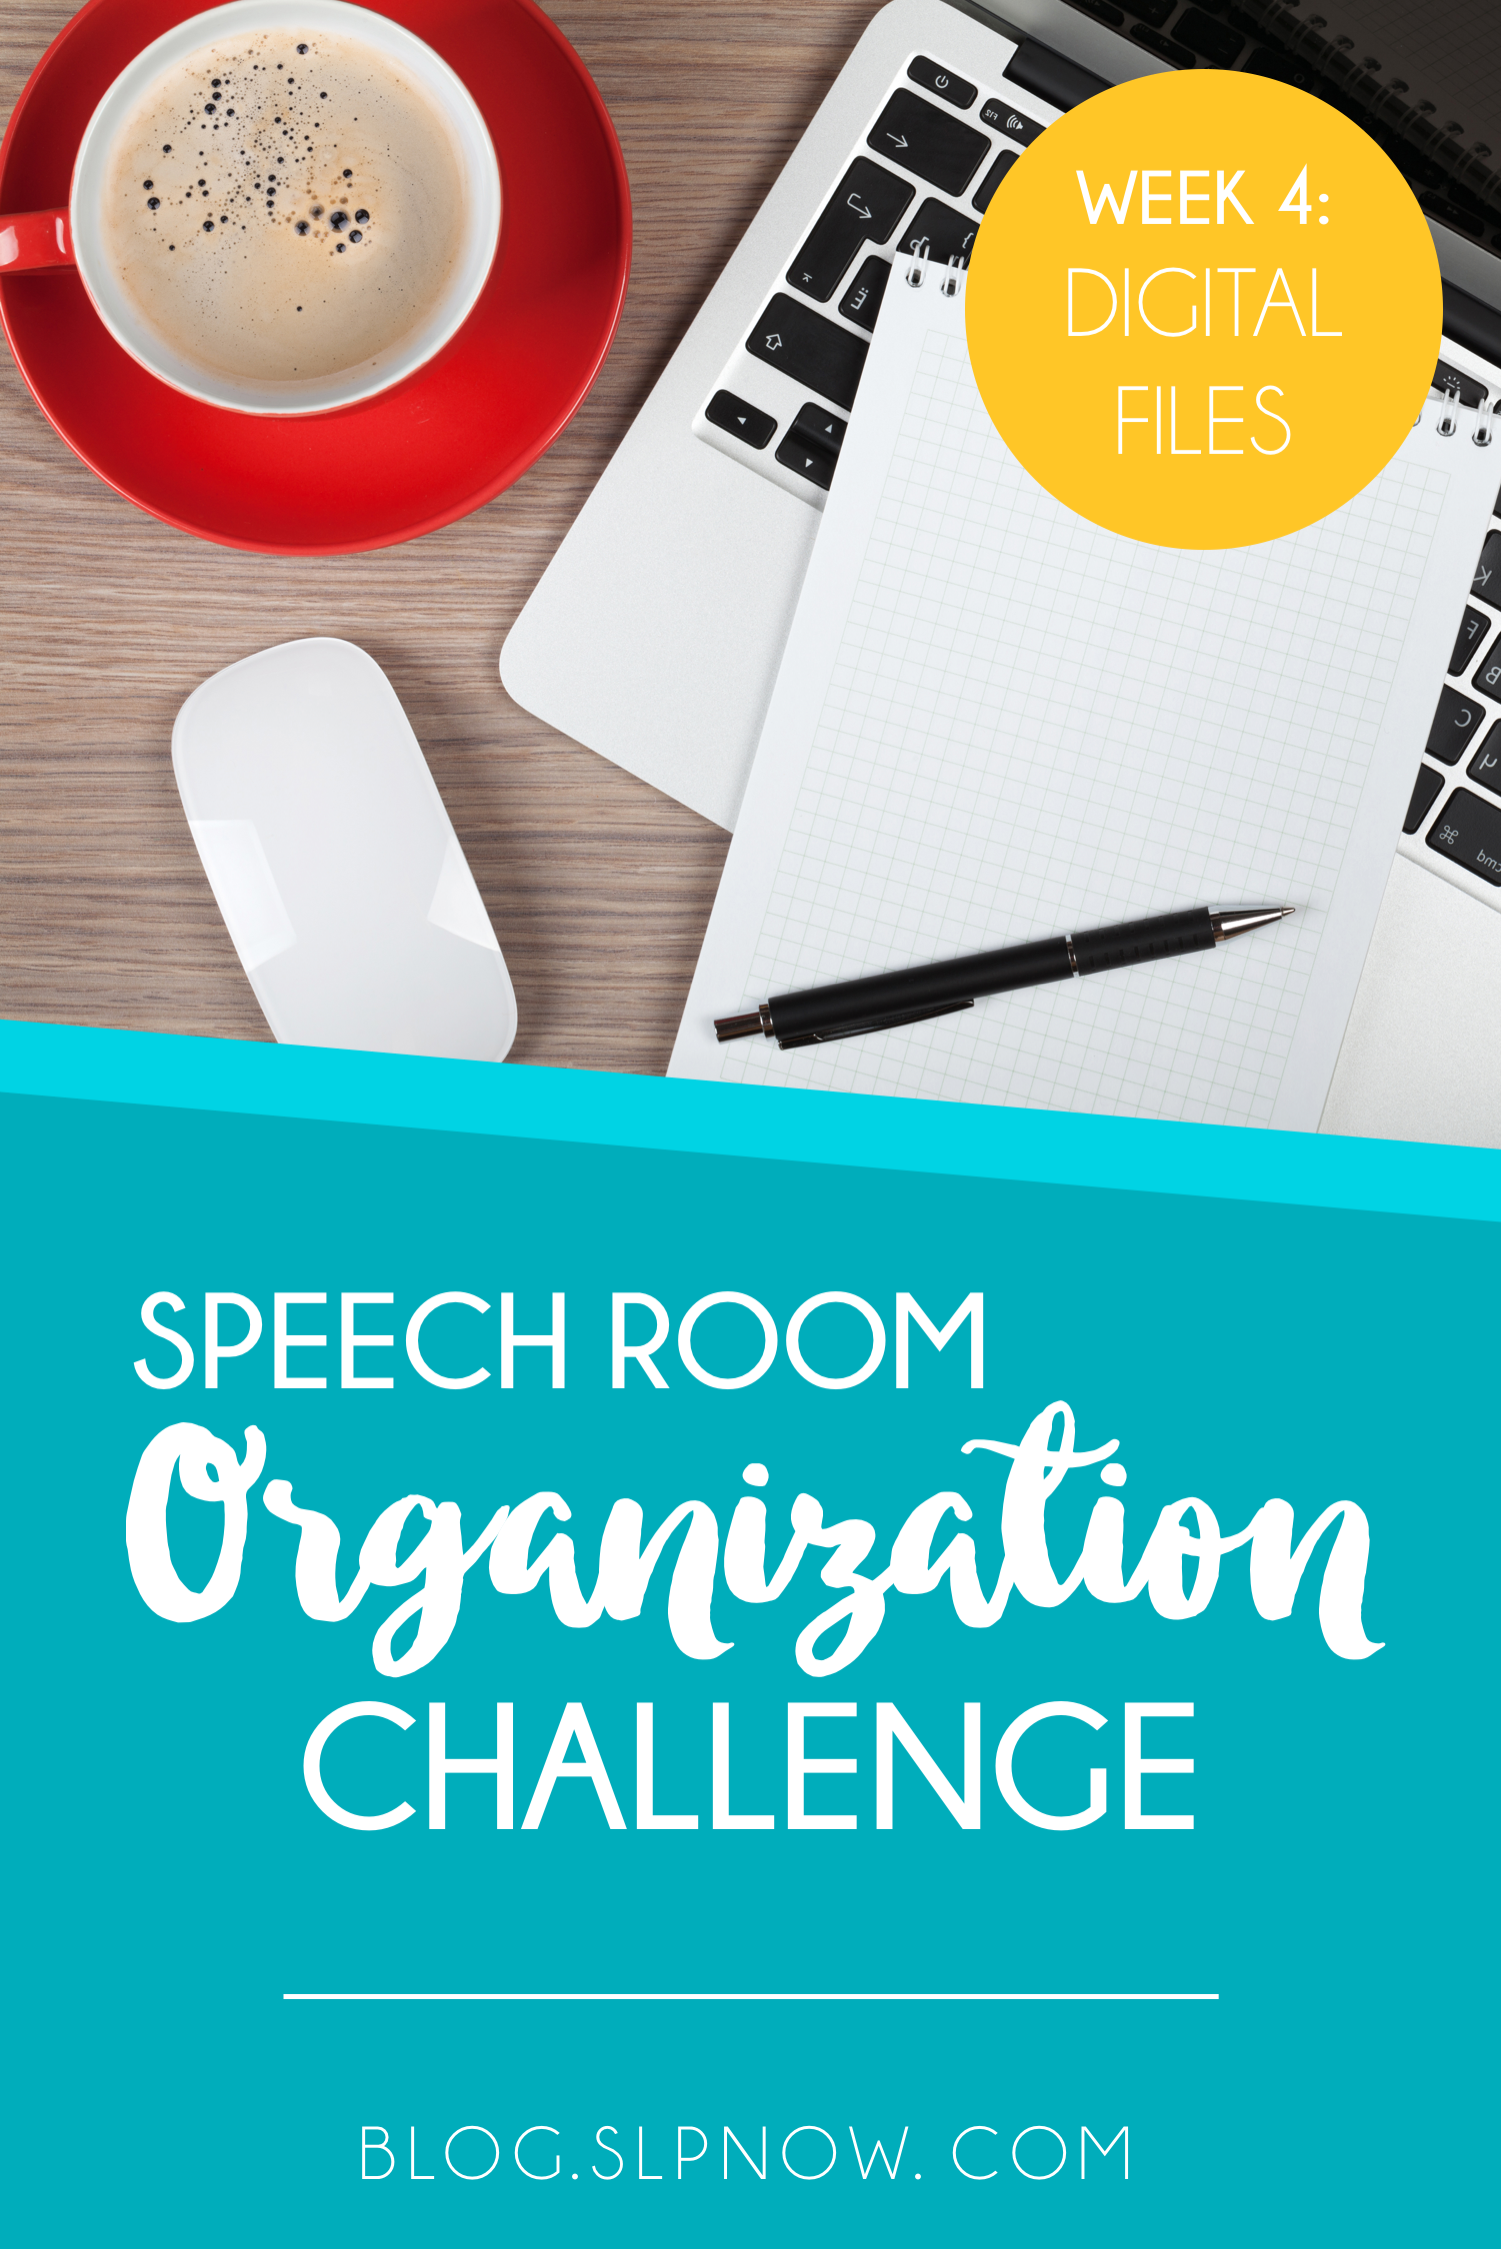 With a growing push to go paperless in schools everywhere, we SLPs need to organize our digital speech therapy materials! This blog post details all the ways SLPs can use Google Drive for digital speech therapy organization, so click through to read more!